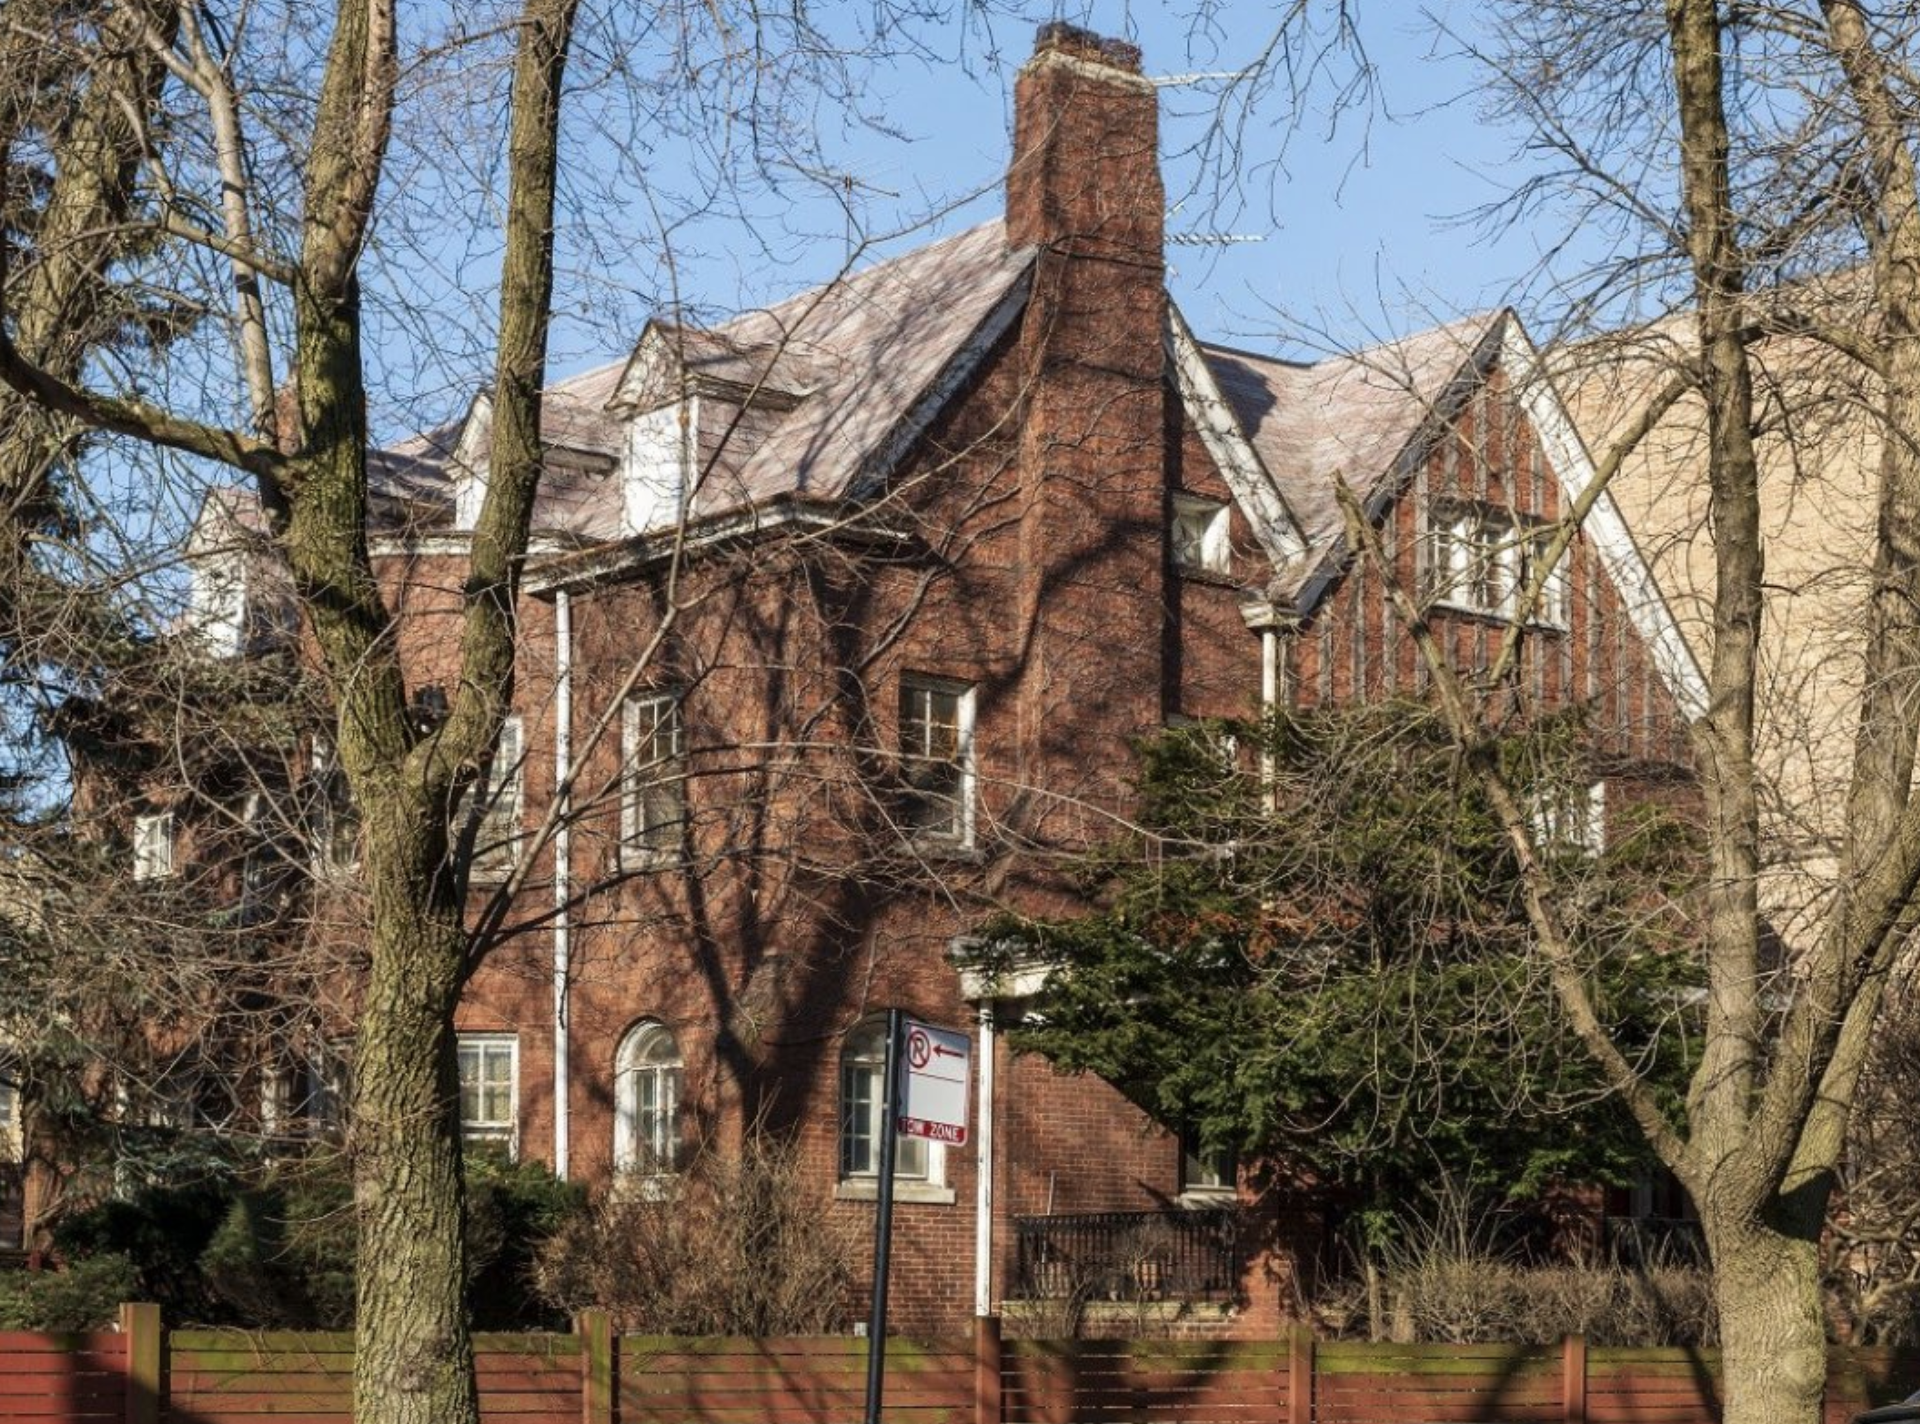 A view of a three-story brick building with steep gables and a chimney. There are trees and landscaping around the building